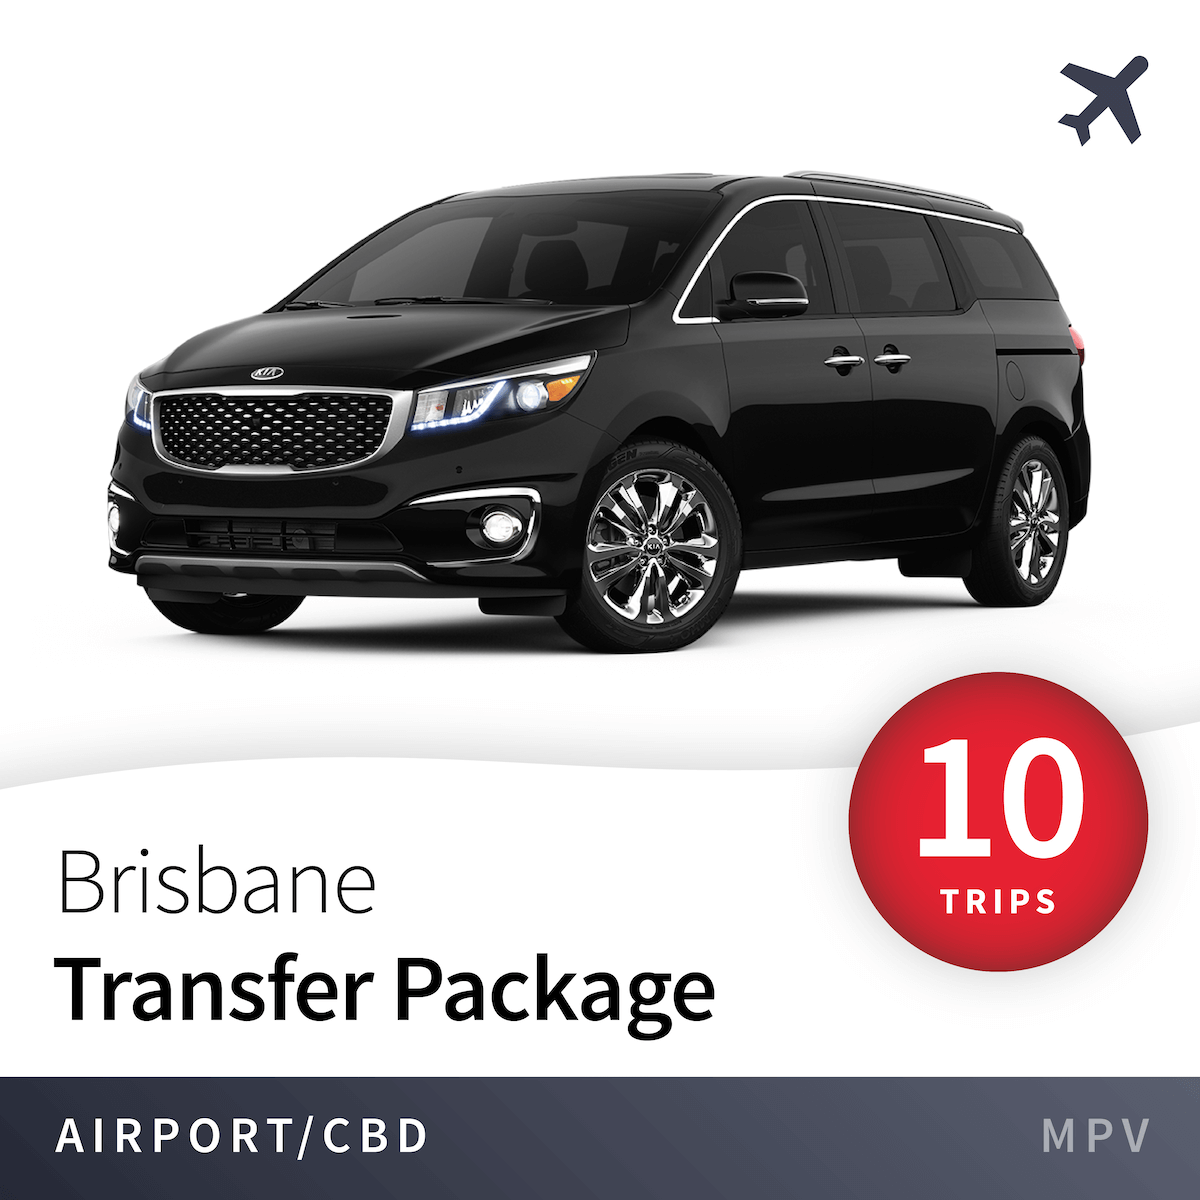 Brisbane Airport Transfer Package - MPV (10 Trips) 13